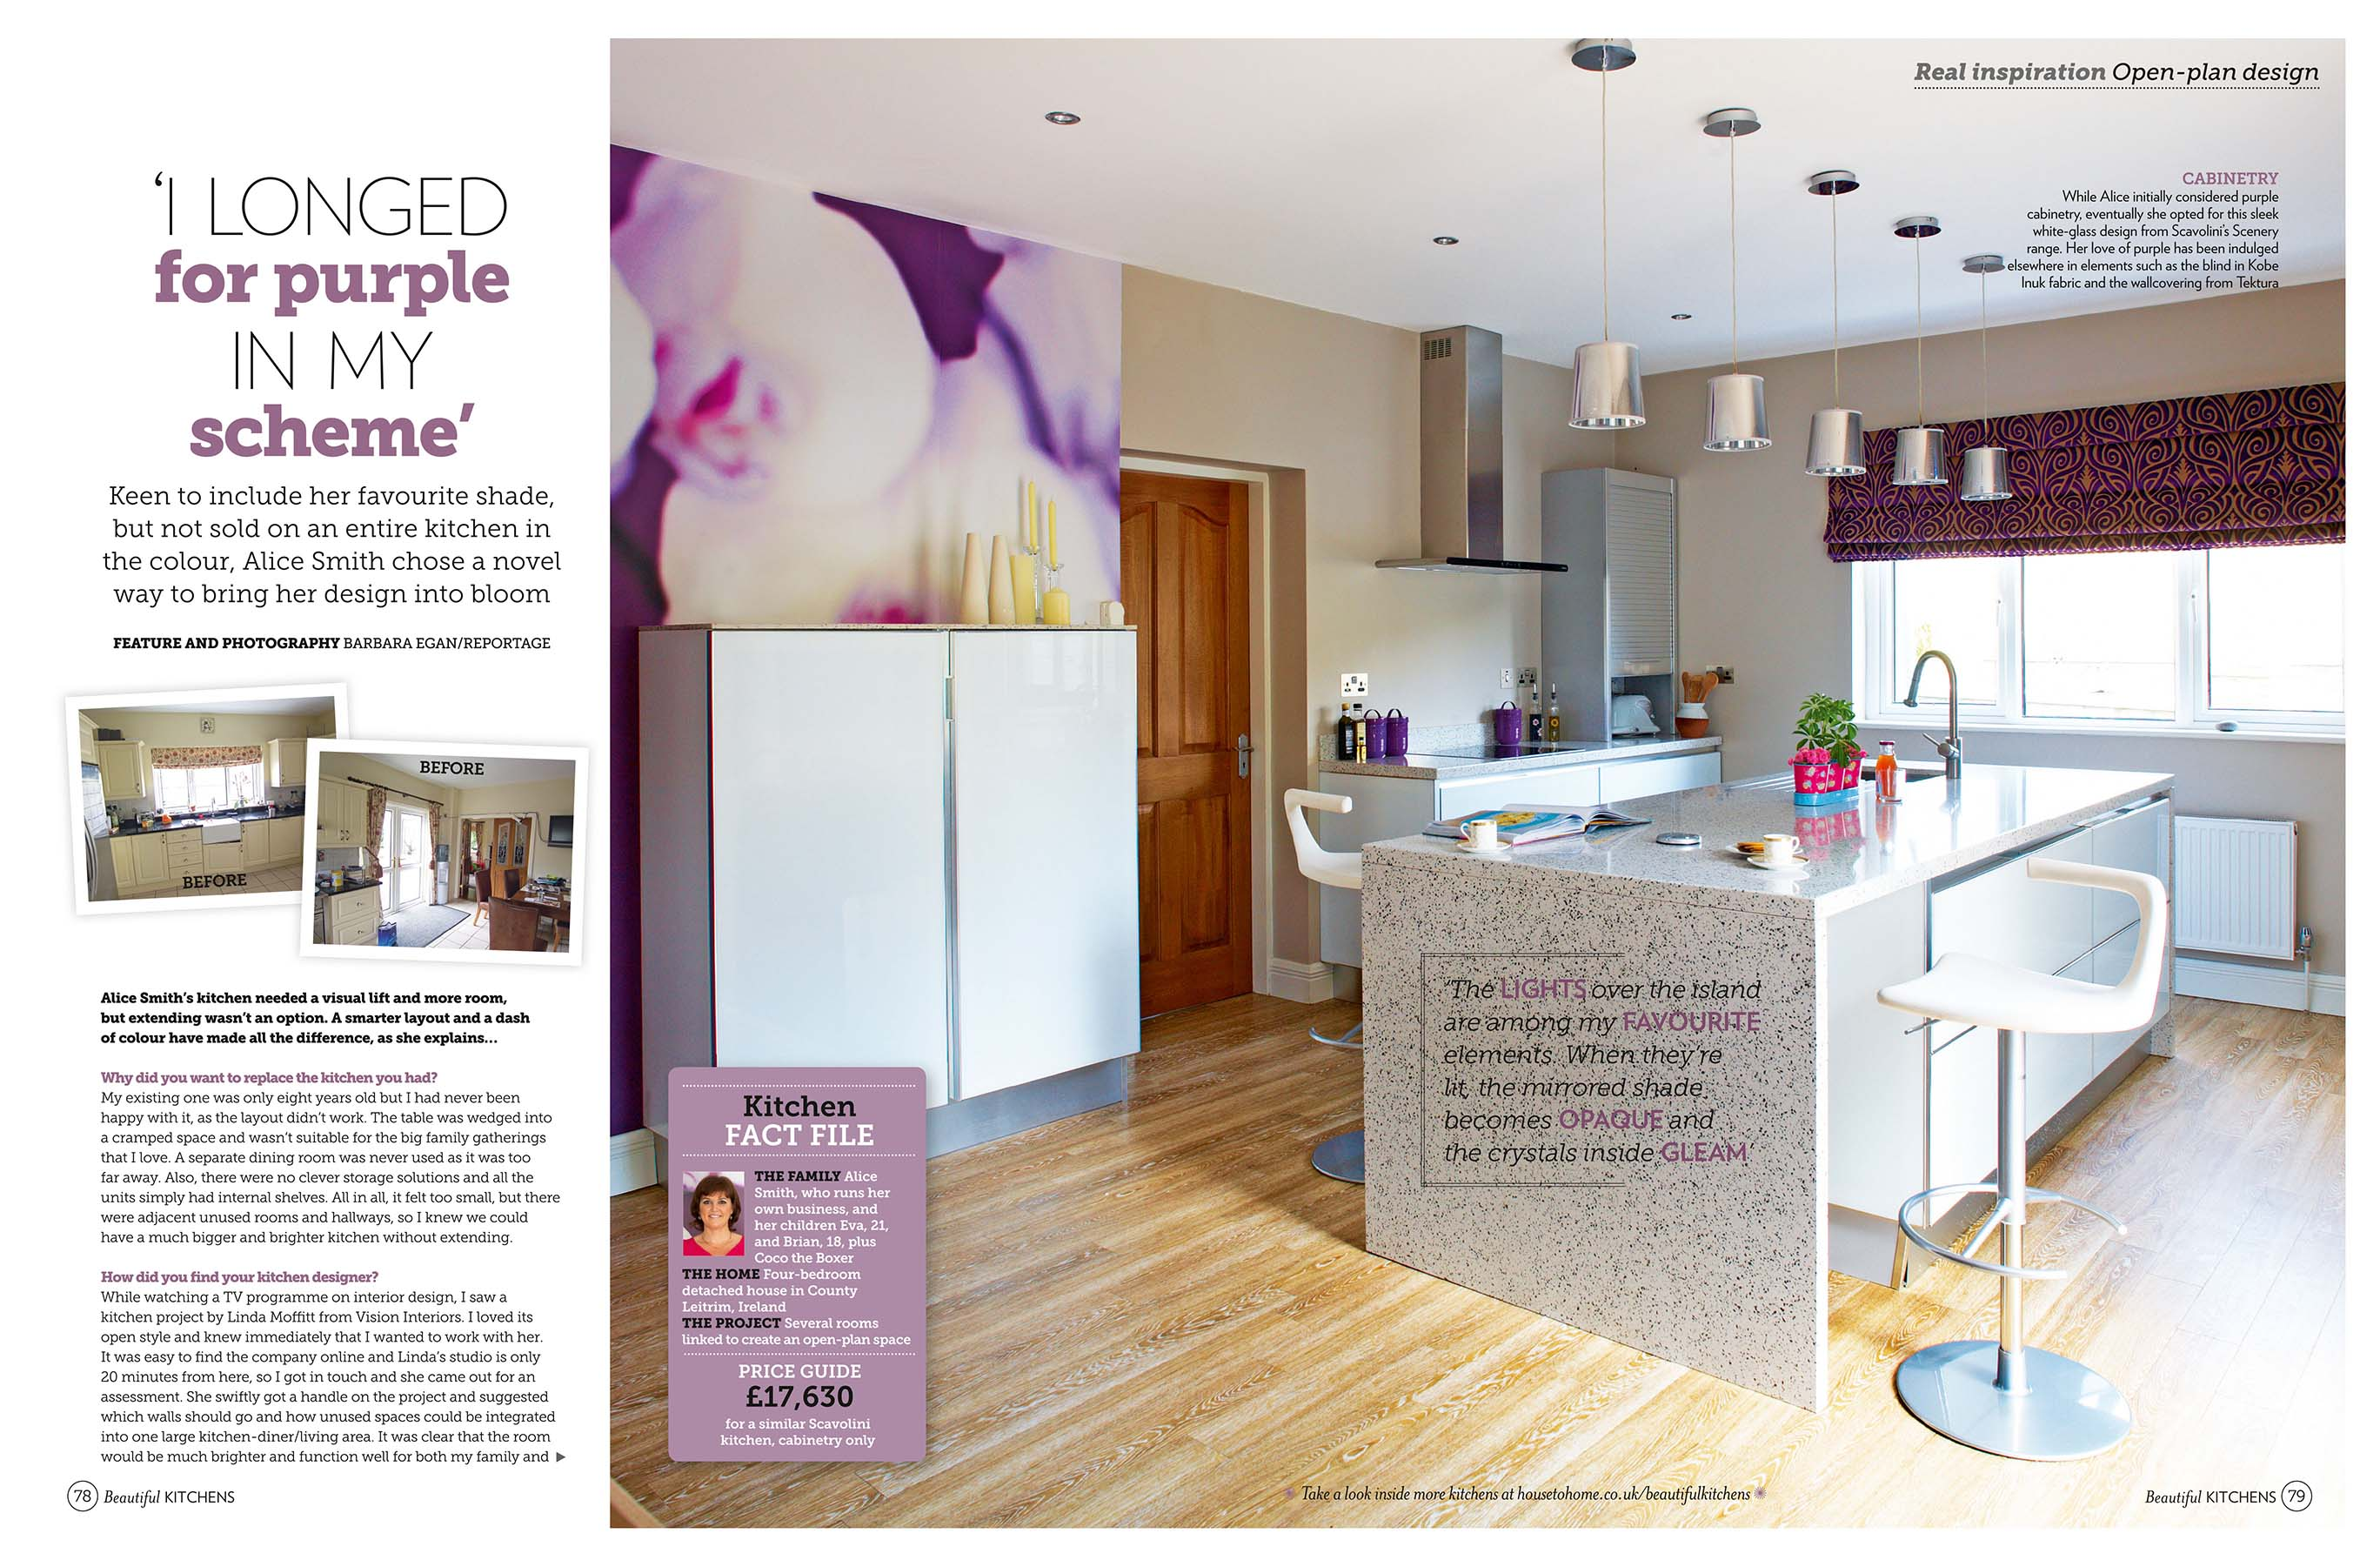 Beautiful Kitchens January 2013 Featuring Linda Moffitt From Vision Interiors SligoIreland